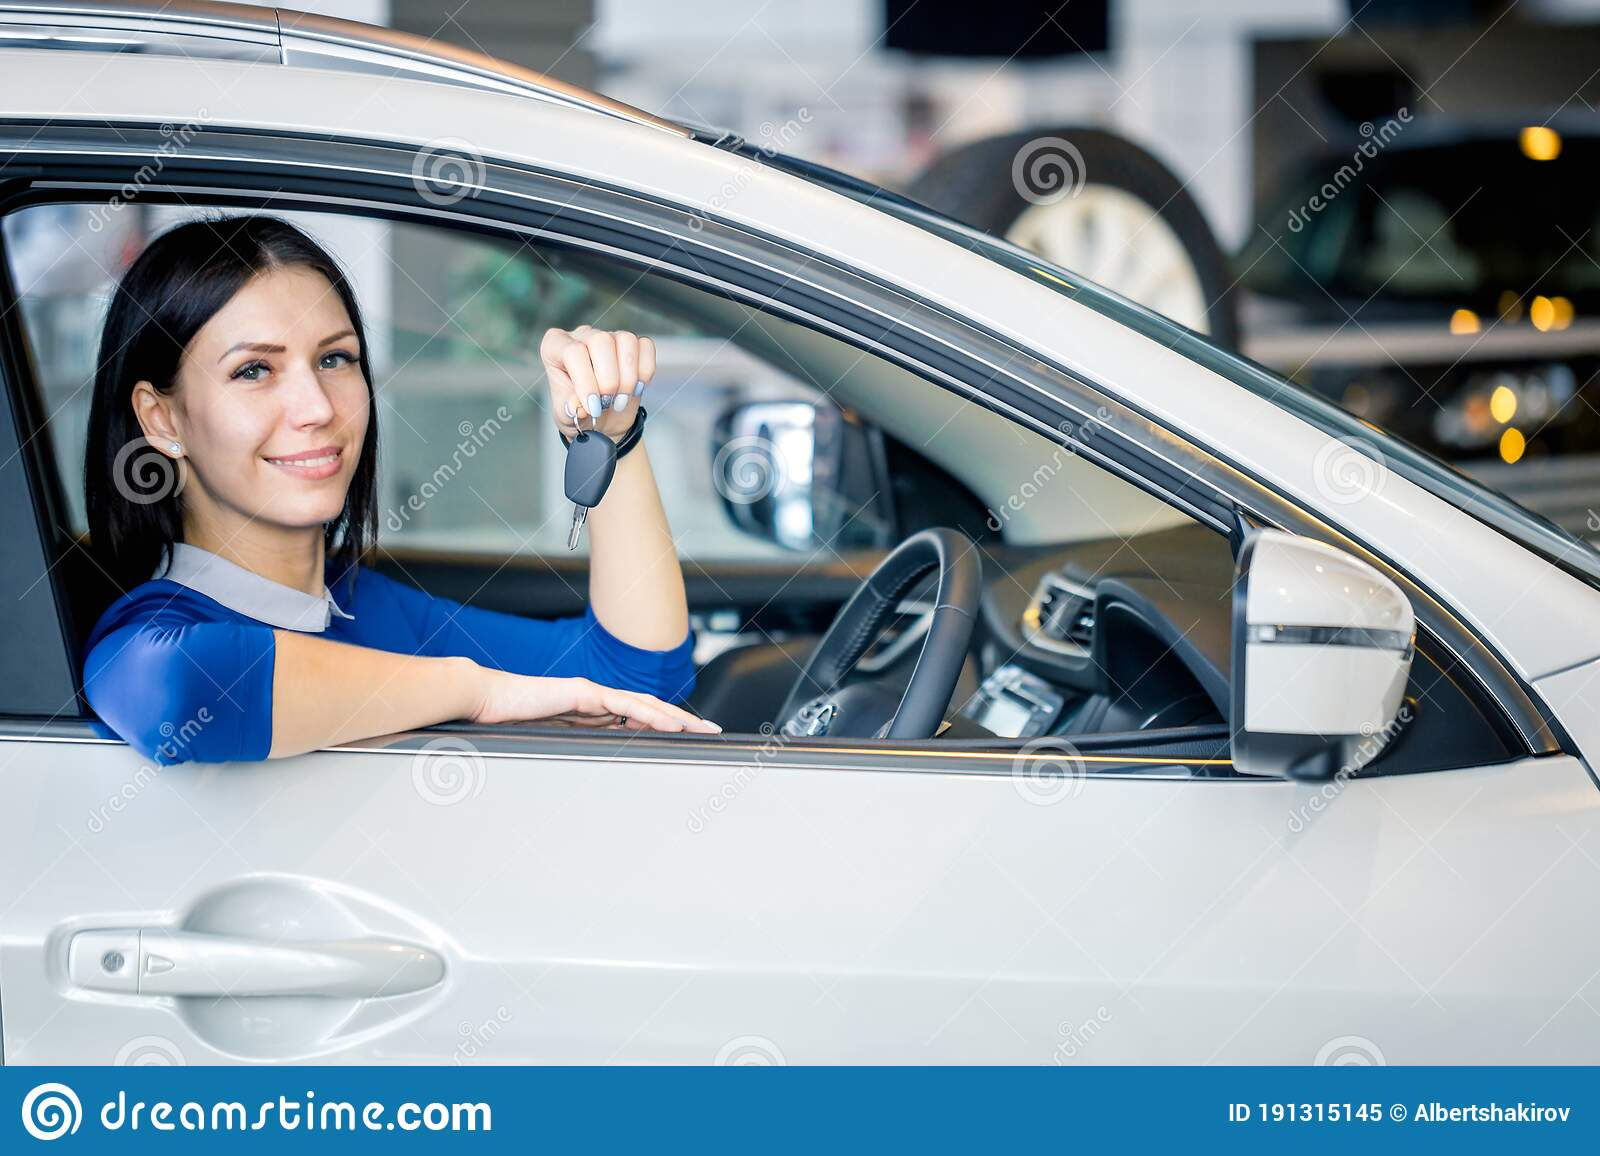 896 Woman Car Keys Showroom Photos Free Royalty Free Stock Photos From Dreamstime